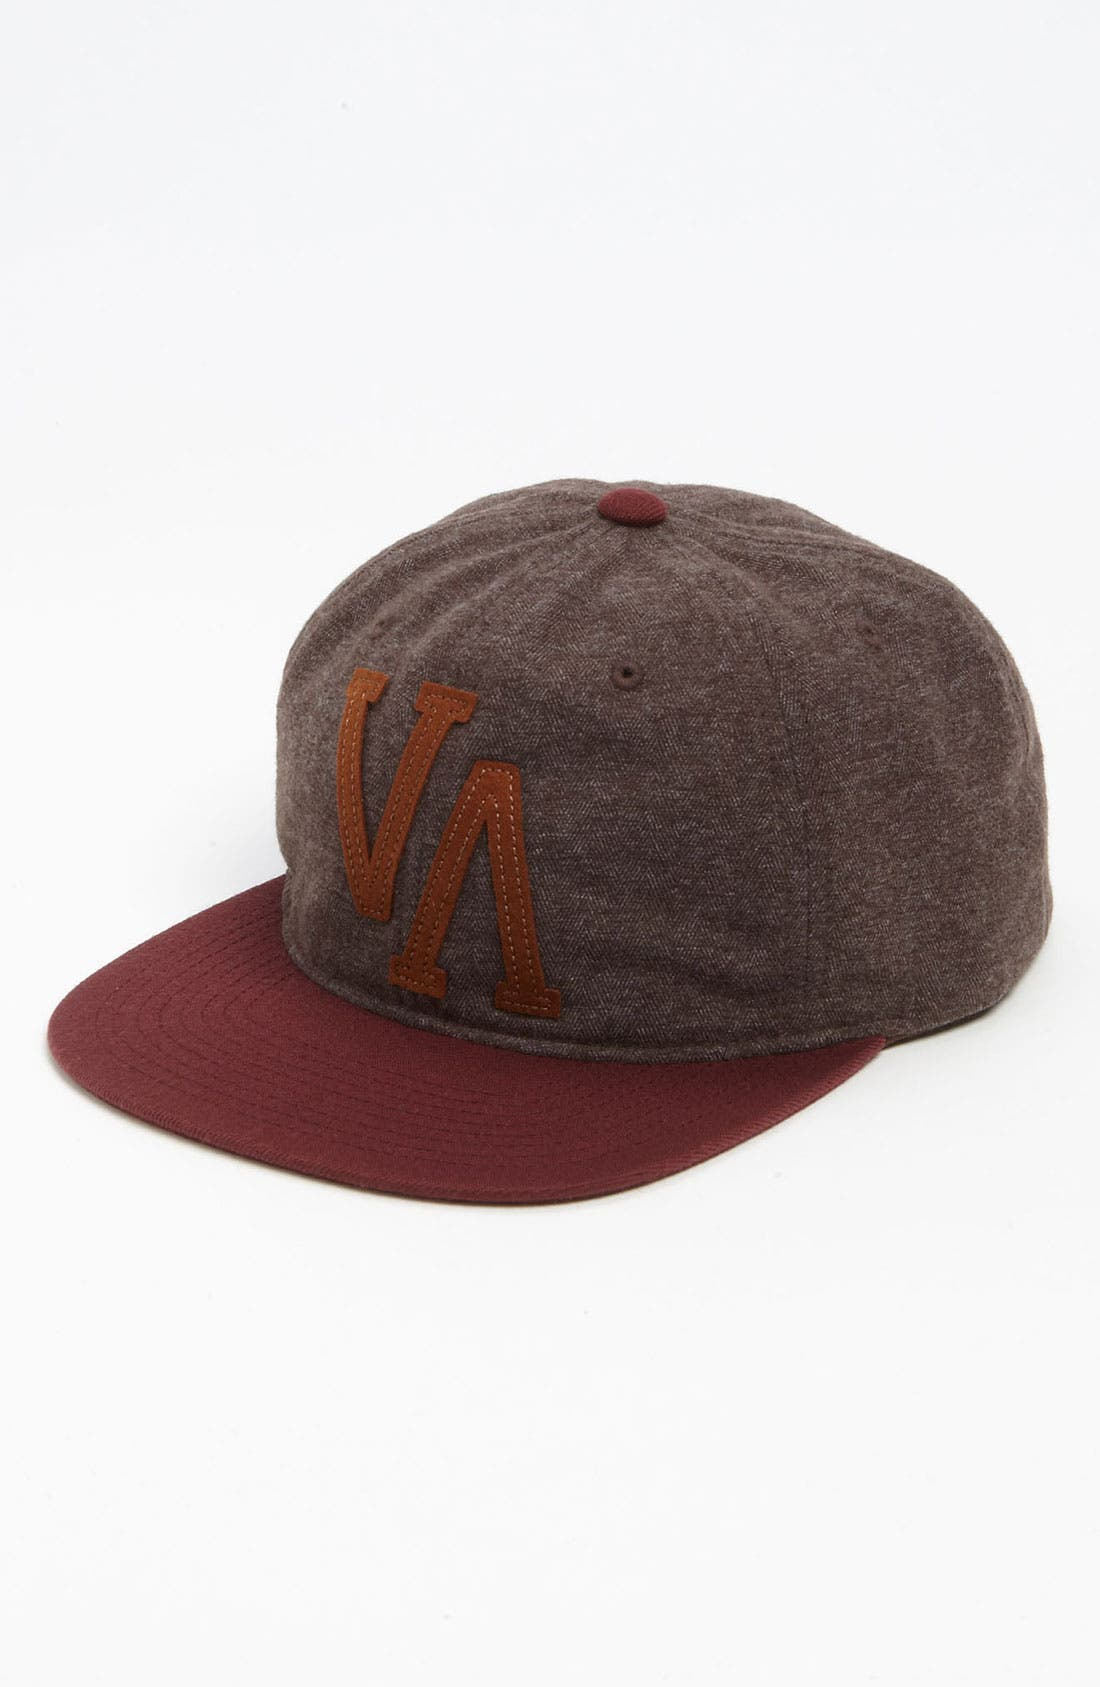 Main Image - RVCA 'Old Gold' Snapback Baseball Cap